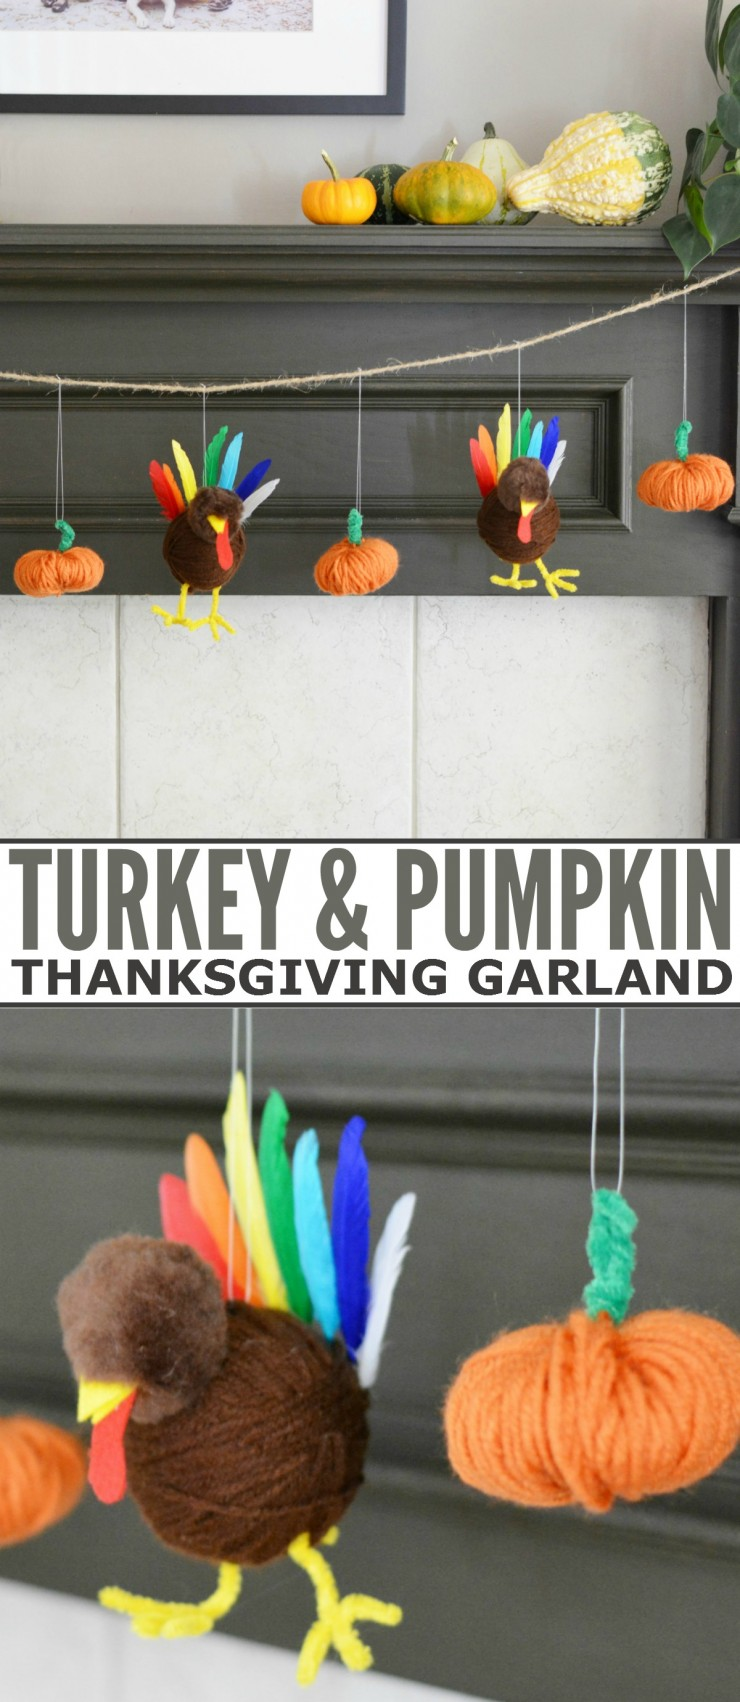 Re-purpose plastic bags to create this adorable Turkey and Pumpkin Thanksgiving Garland DIY craft project.